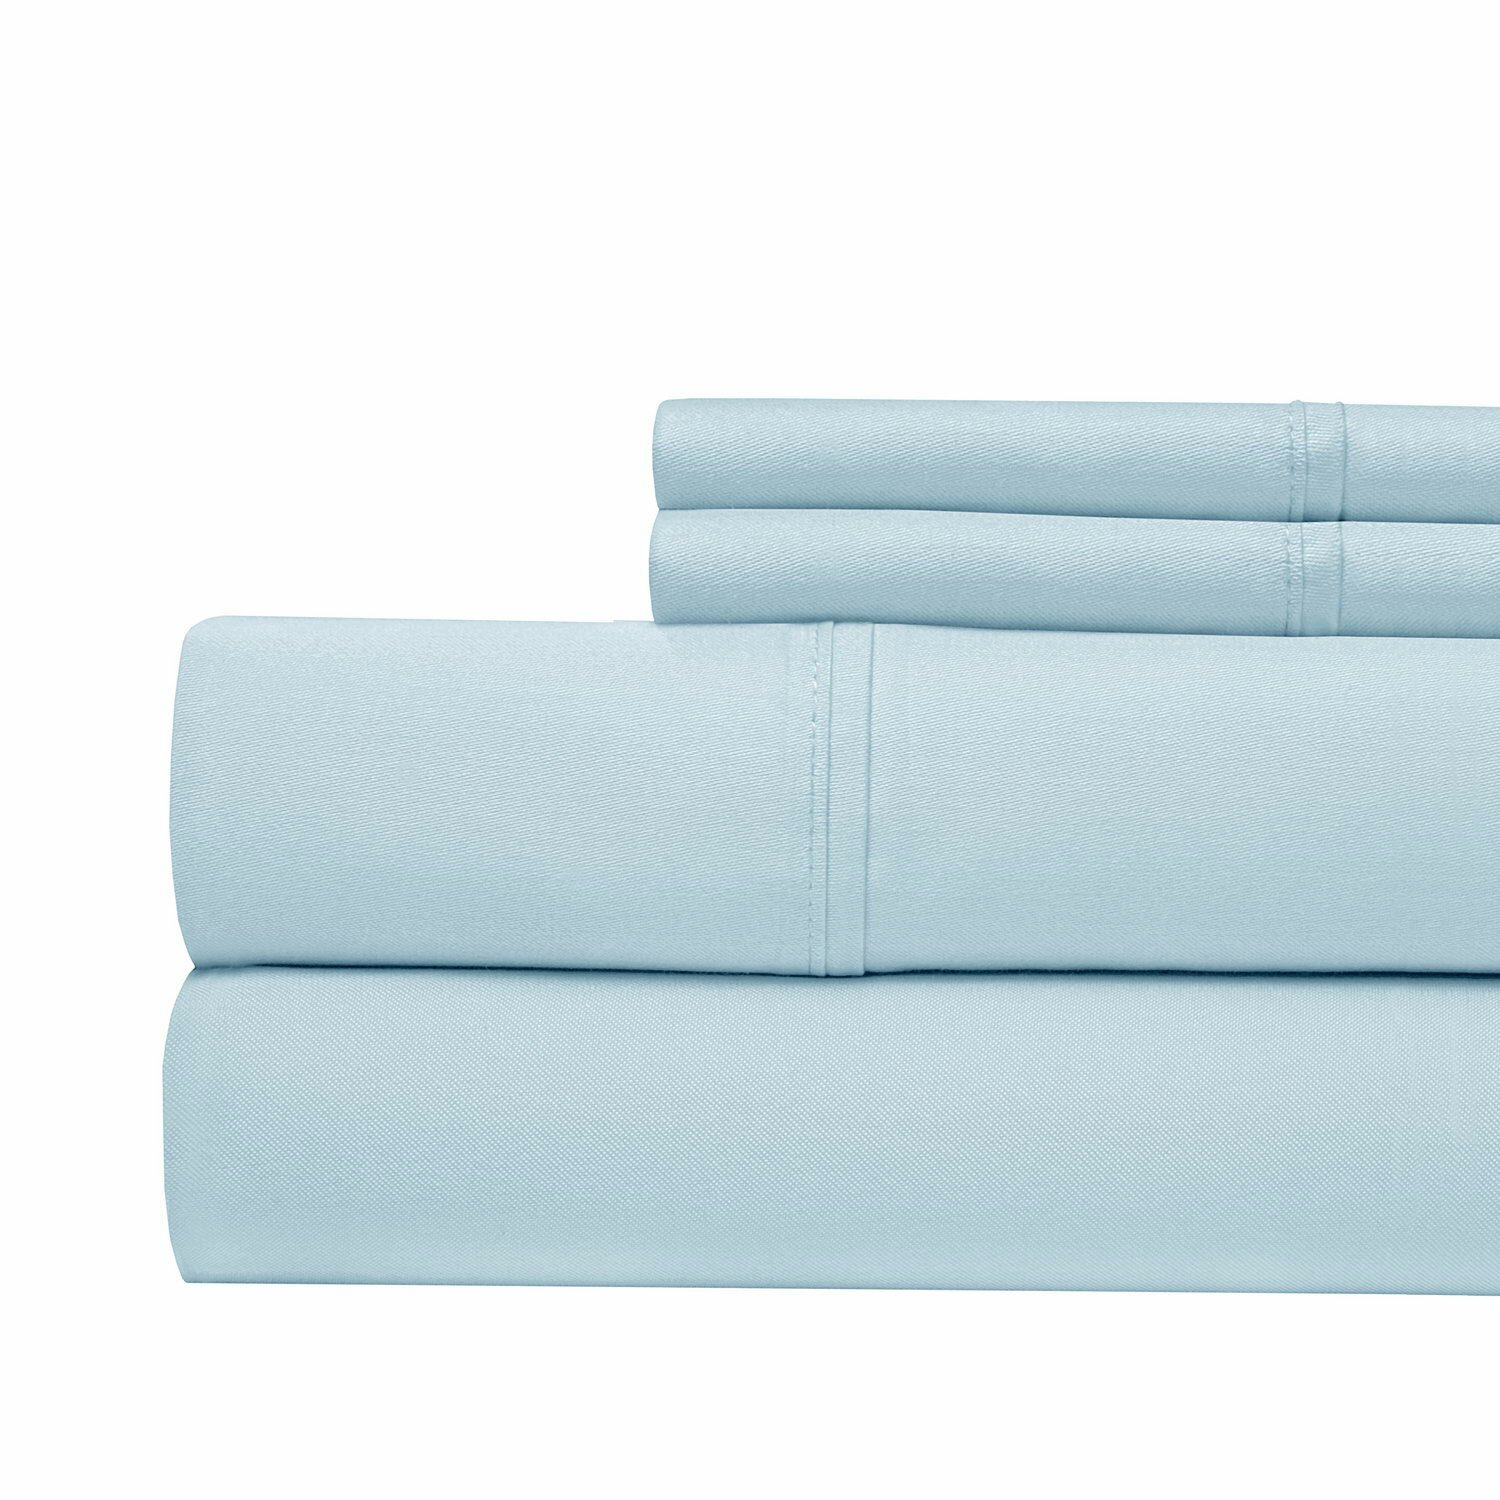 Aspire linens 800 thread count sheet set reviews wayfair for What is thread count in sheets